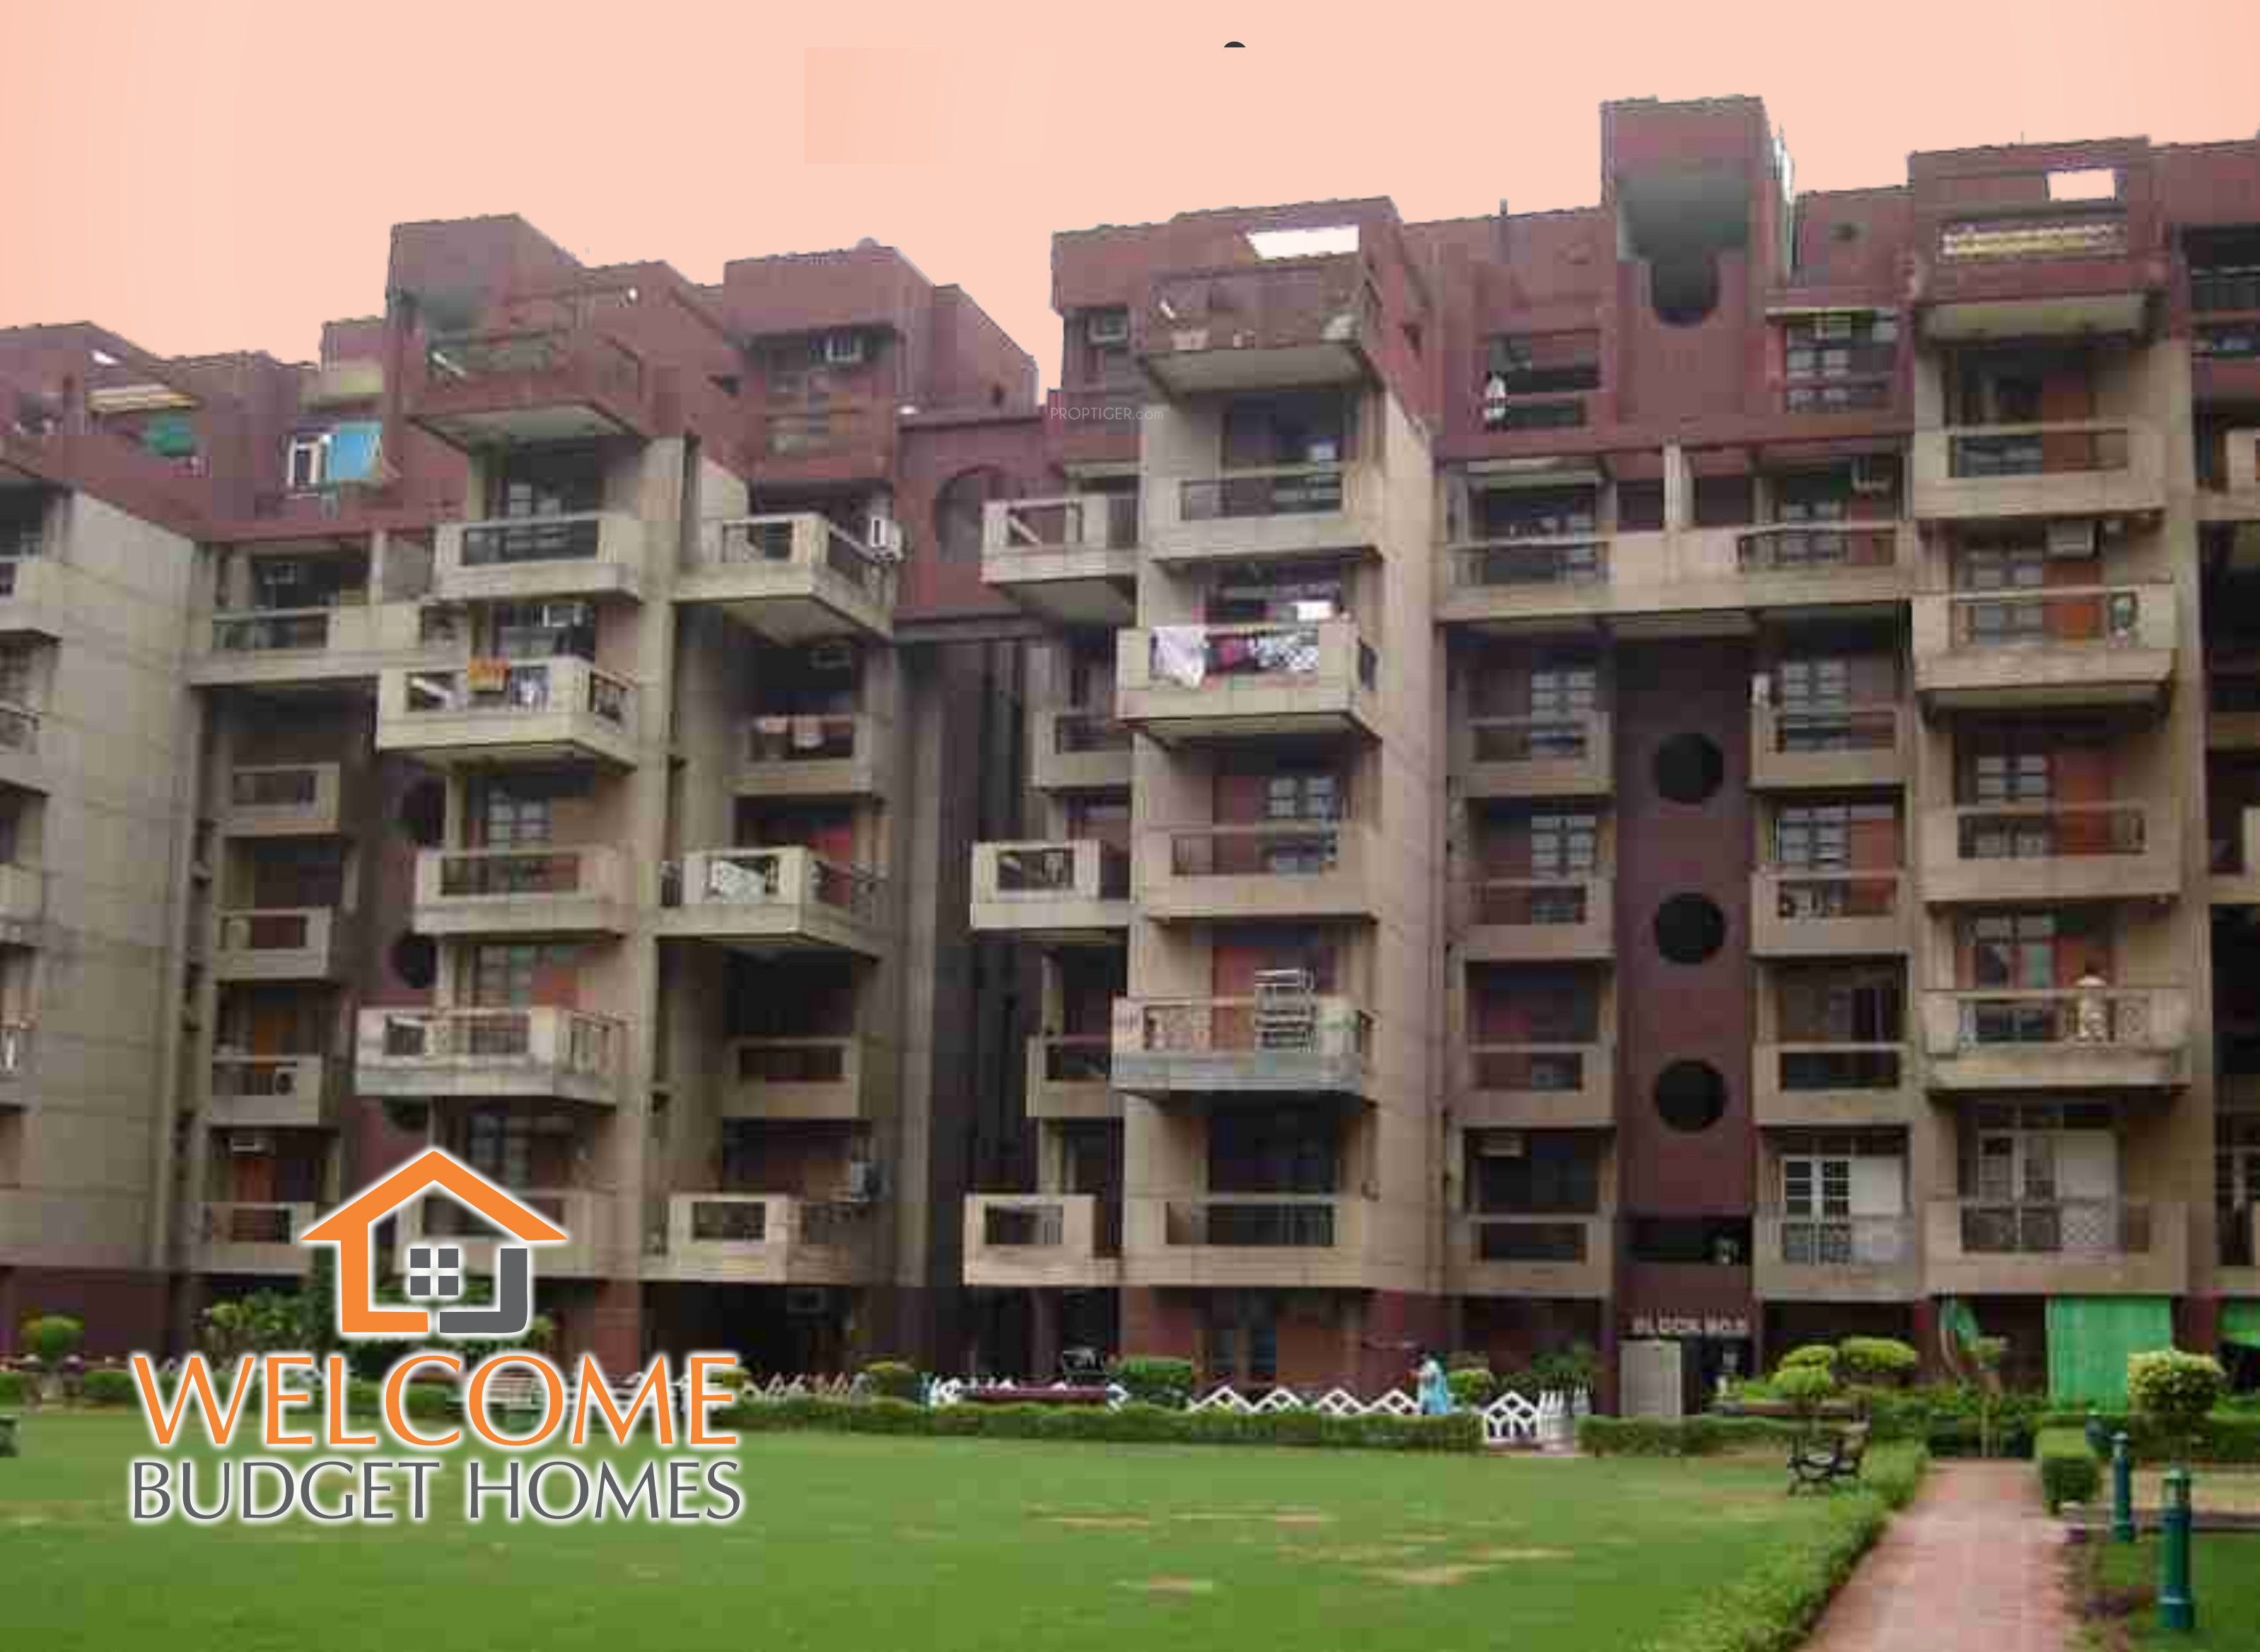 Sartaj welcome budget homes in shahjahanpur neemrana for Budget home builders